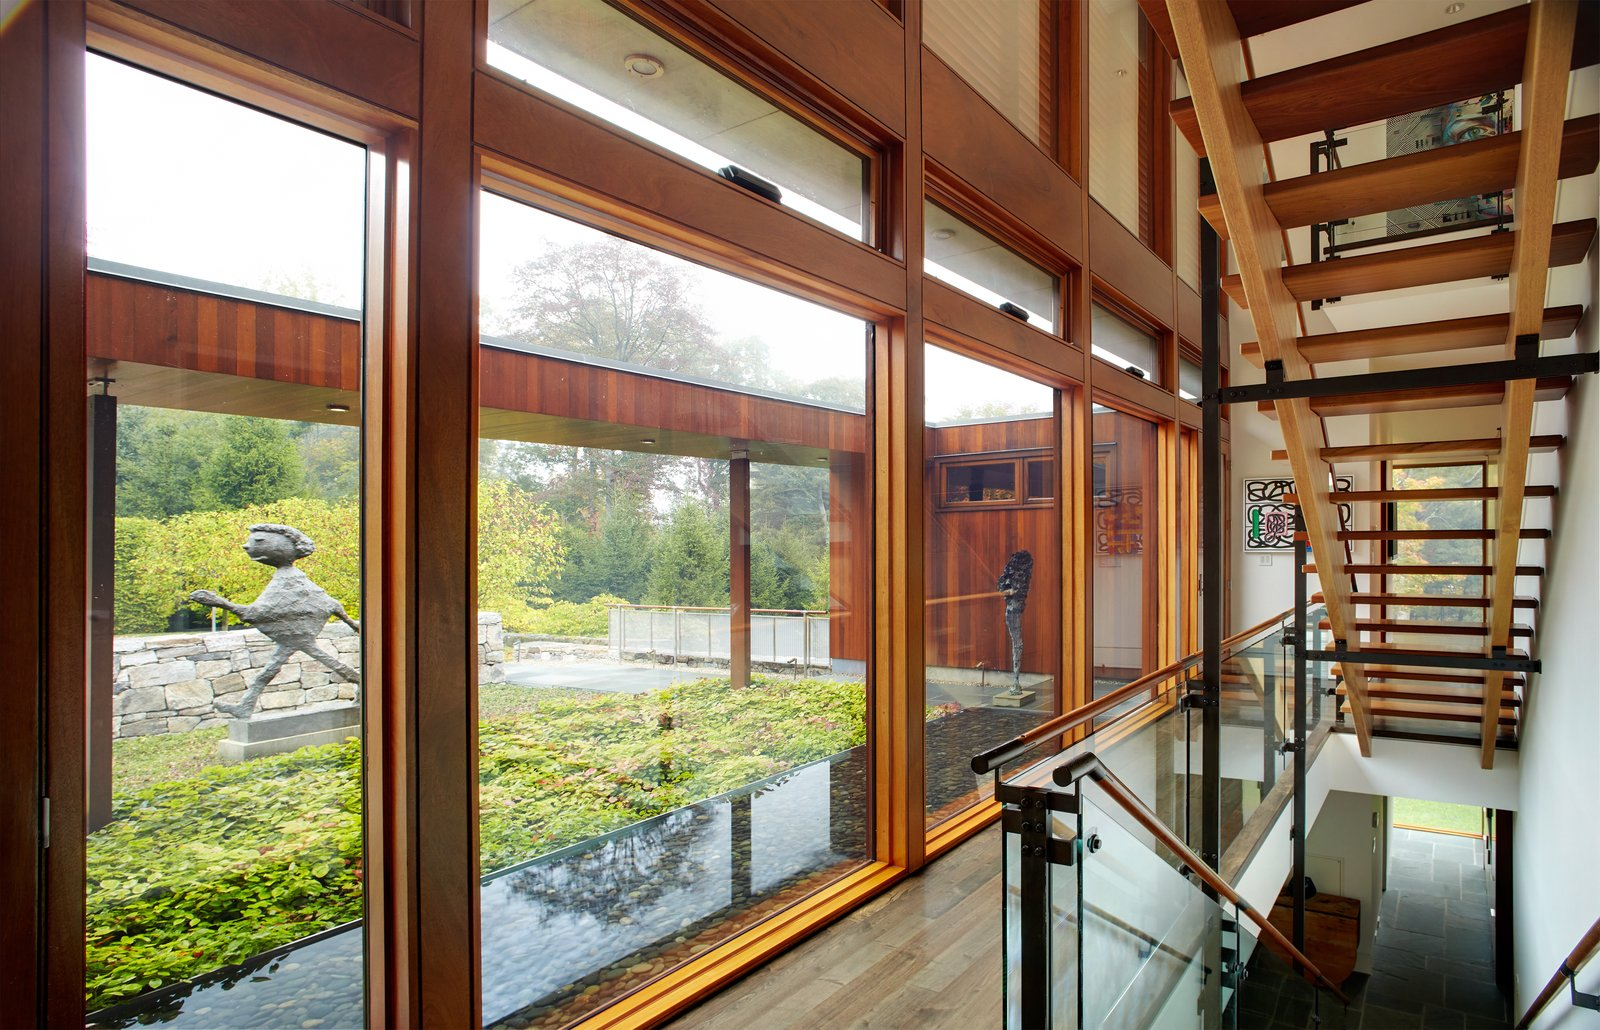 A two-story glass curtain wall allows for natural light and views to permeate the space and the open stairs.  Photo 3 of 8 in An Eliot Noyes Transformation in Connecticut Honors the Experimental Spirit of the Original